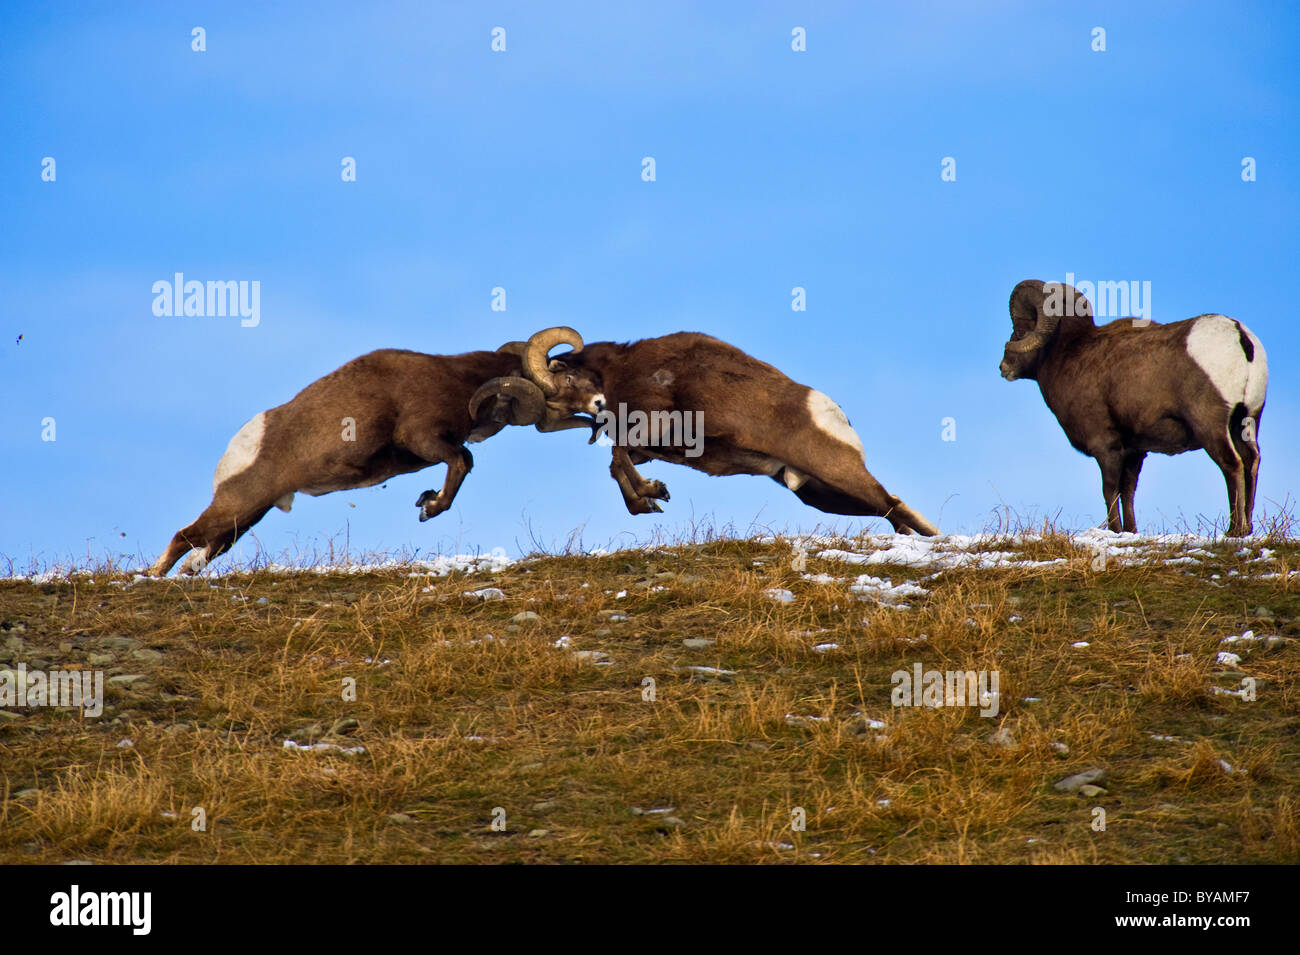 Two Bighorn Sheep butting horns on a grassy hill top - Stock Image